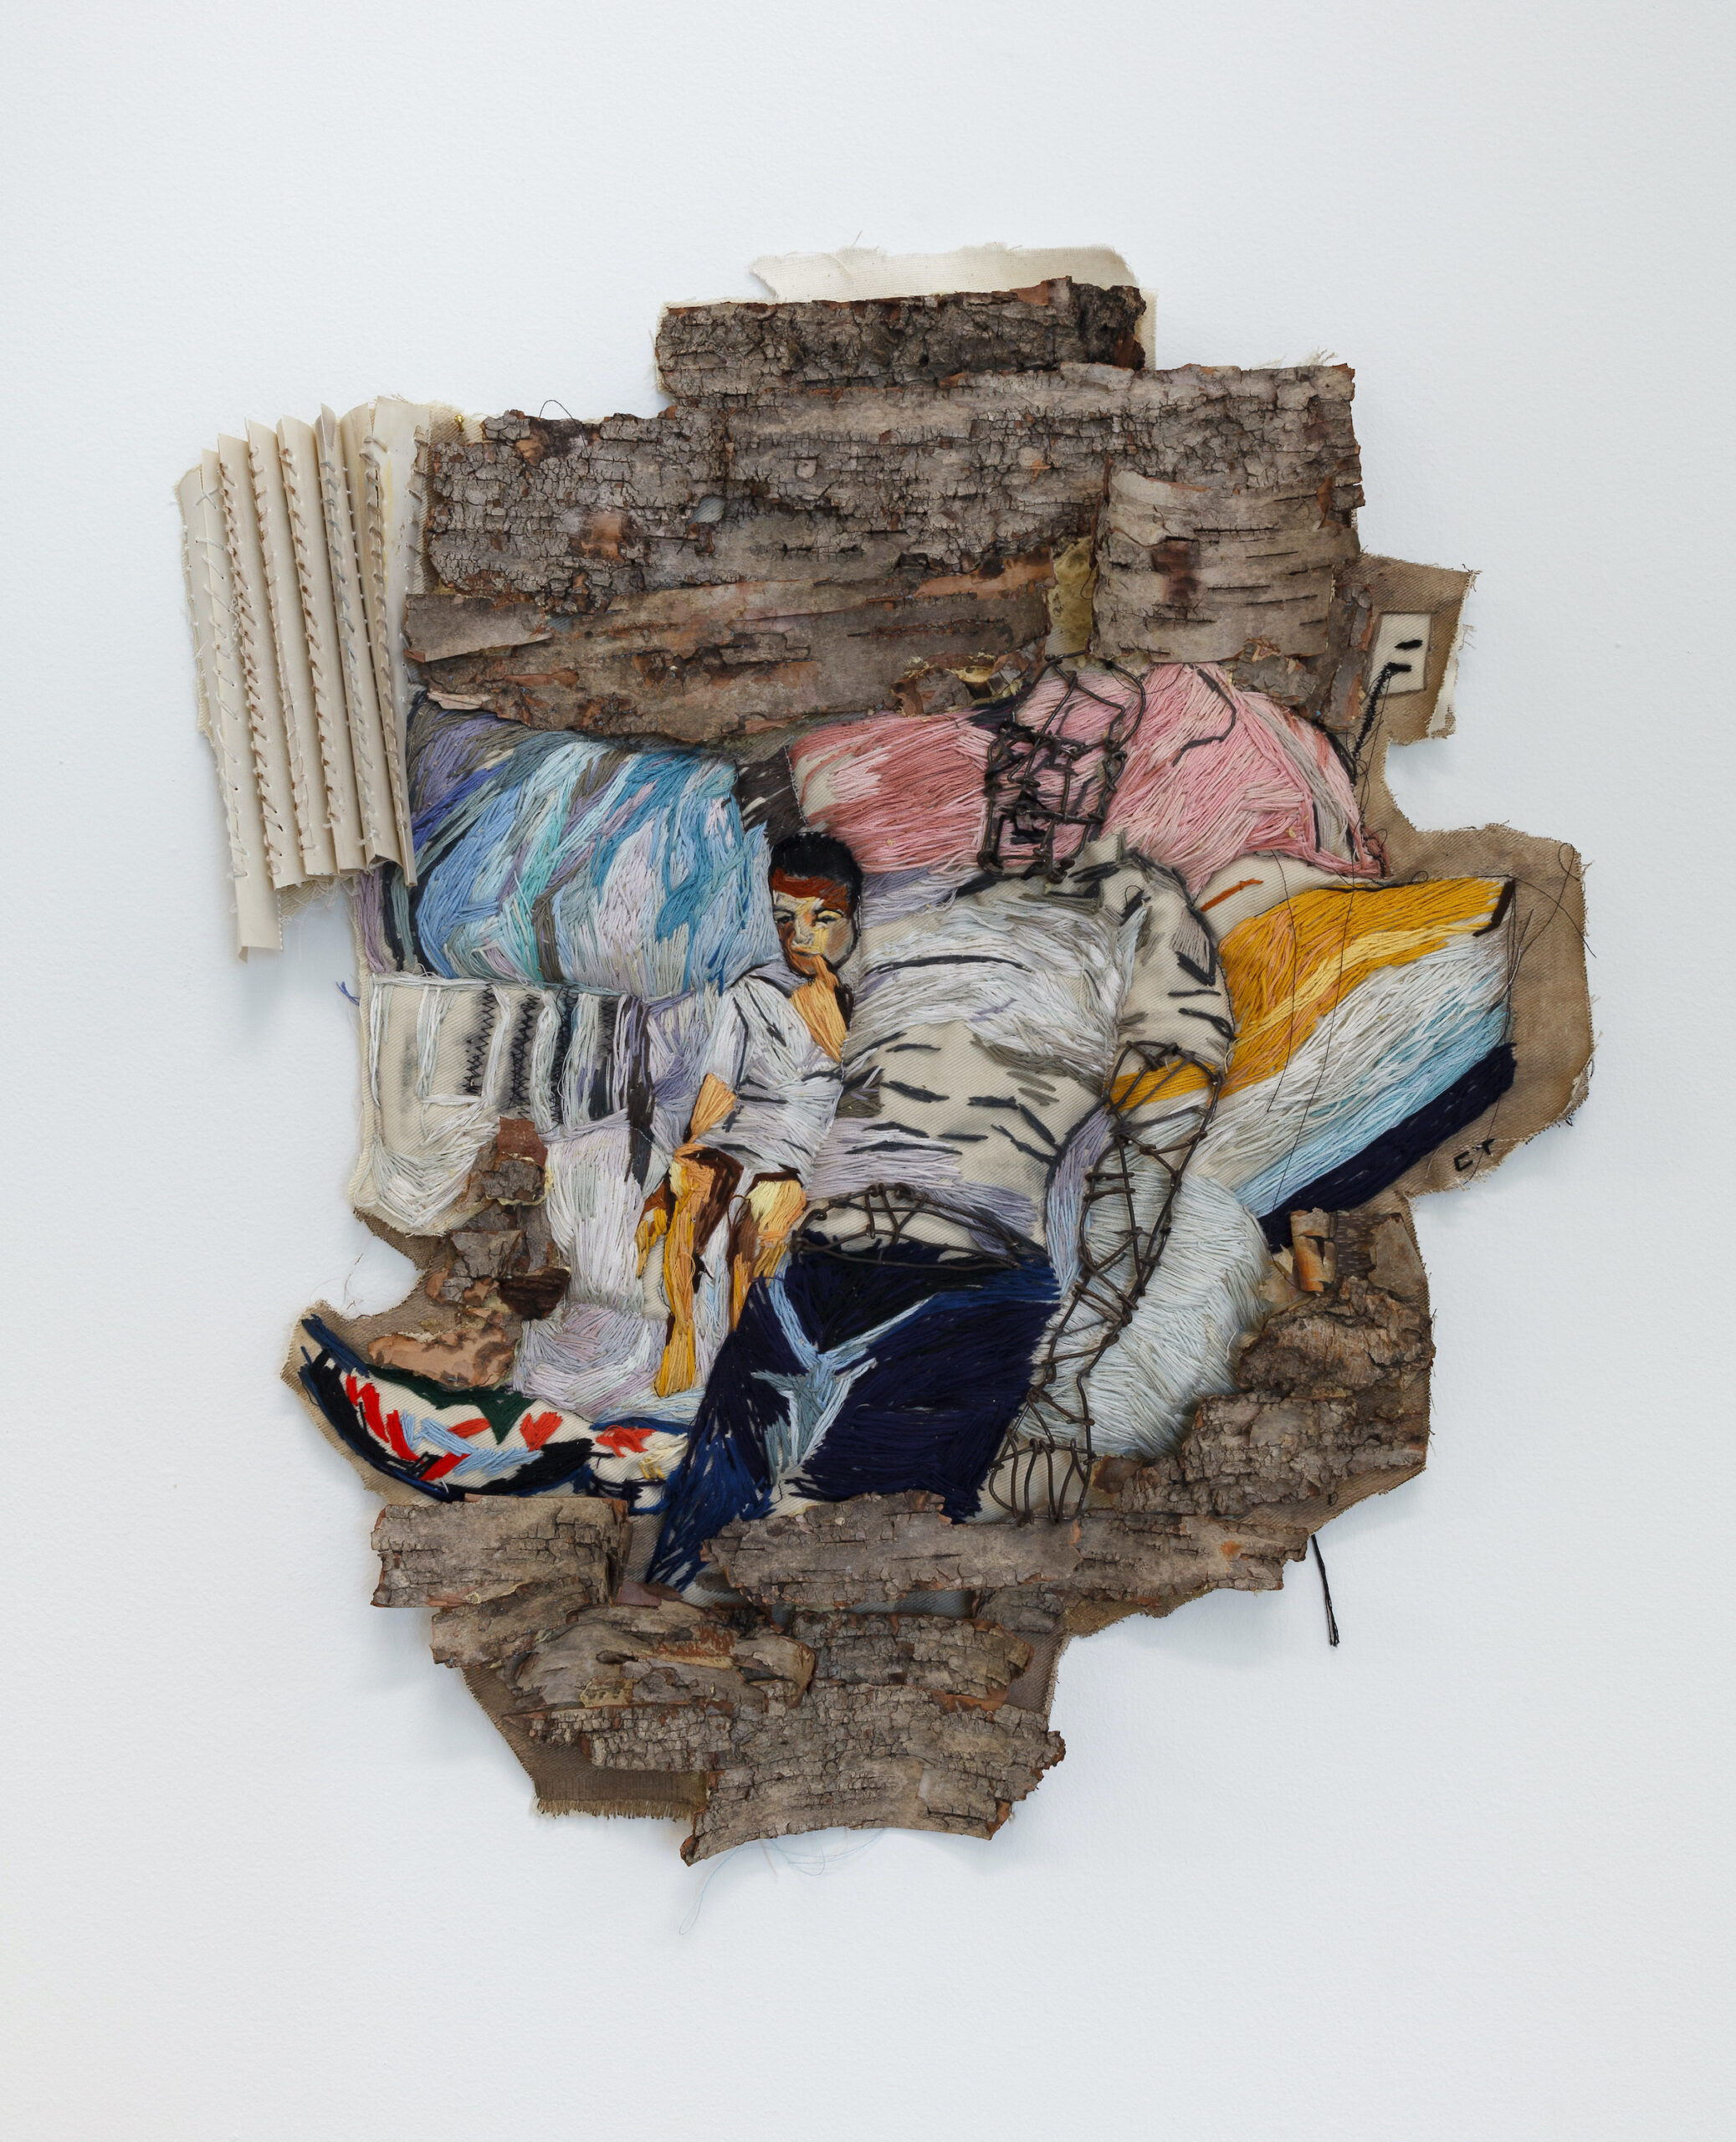 Chiffon Thomas, Iron Father, 2020, Tree bark, embroidery, floss, fabric, window blinds, chalk pastels and rebar, 23 x 20 x 3 inches, Courtesy of Teresa Enriquez and Michael Galex, Coral Gables, FL